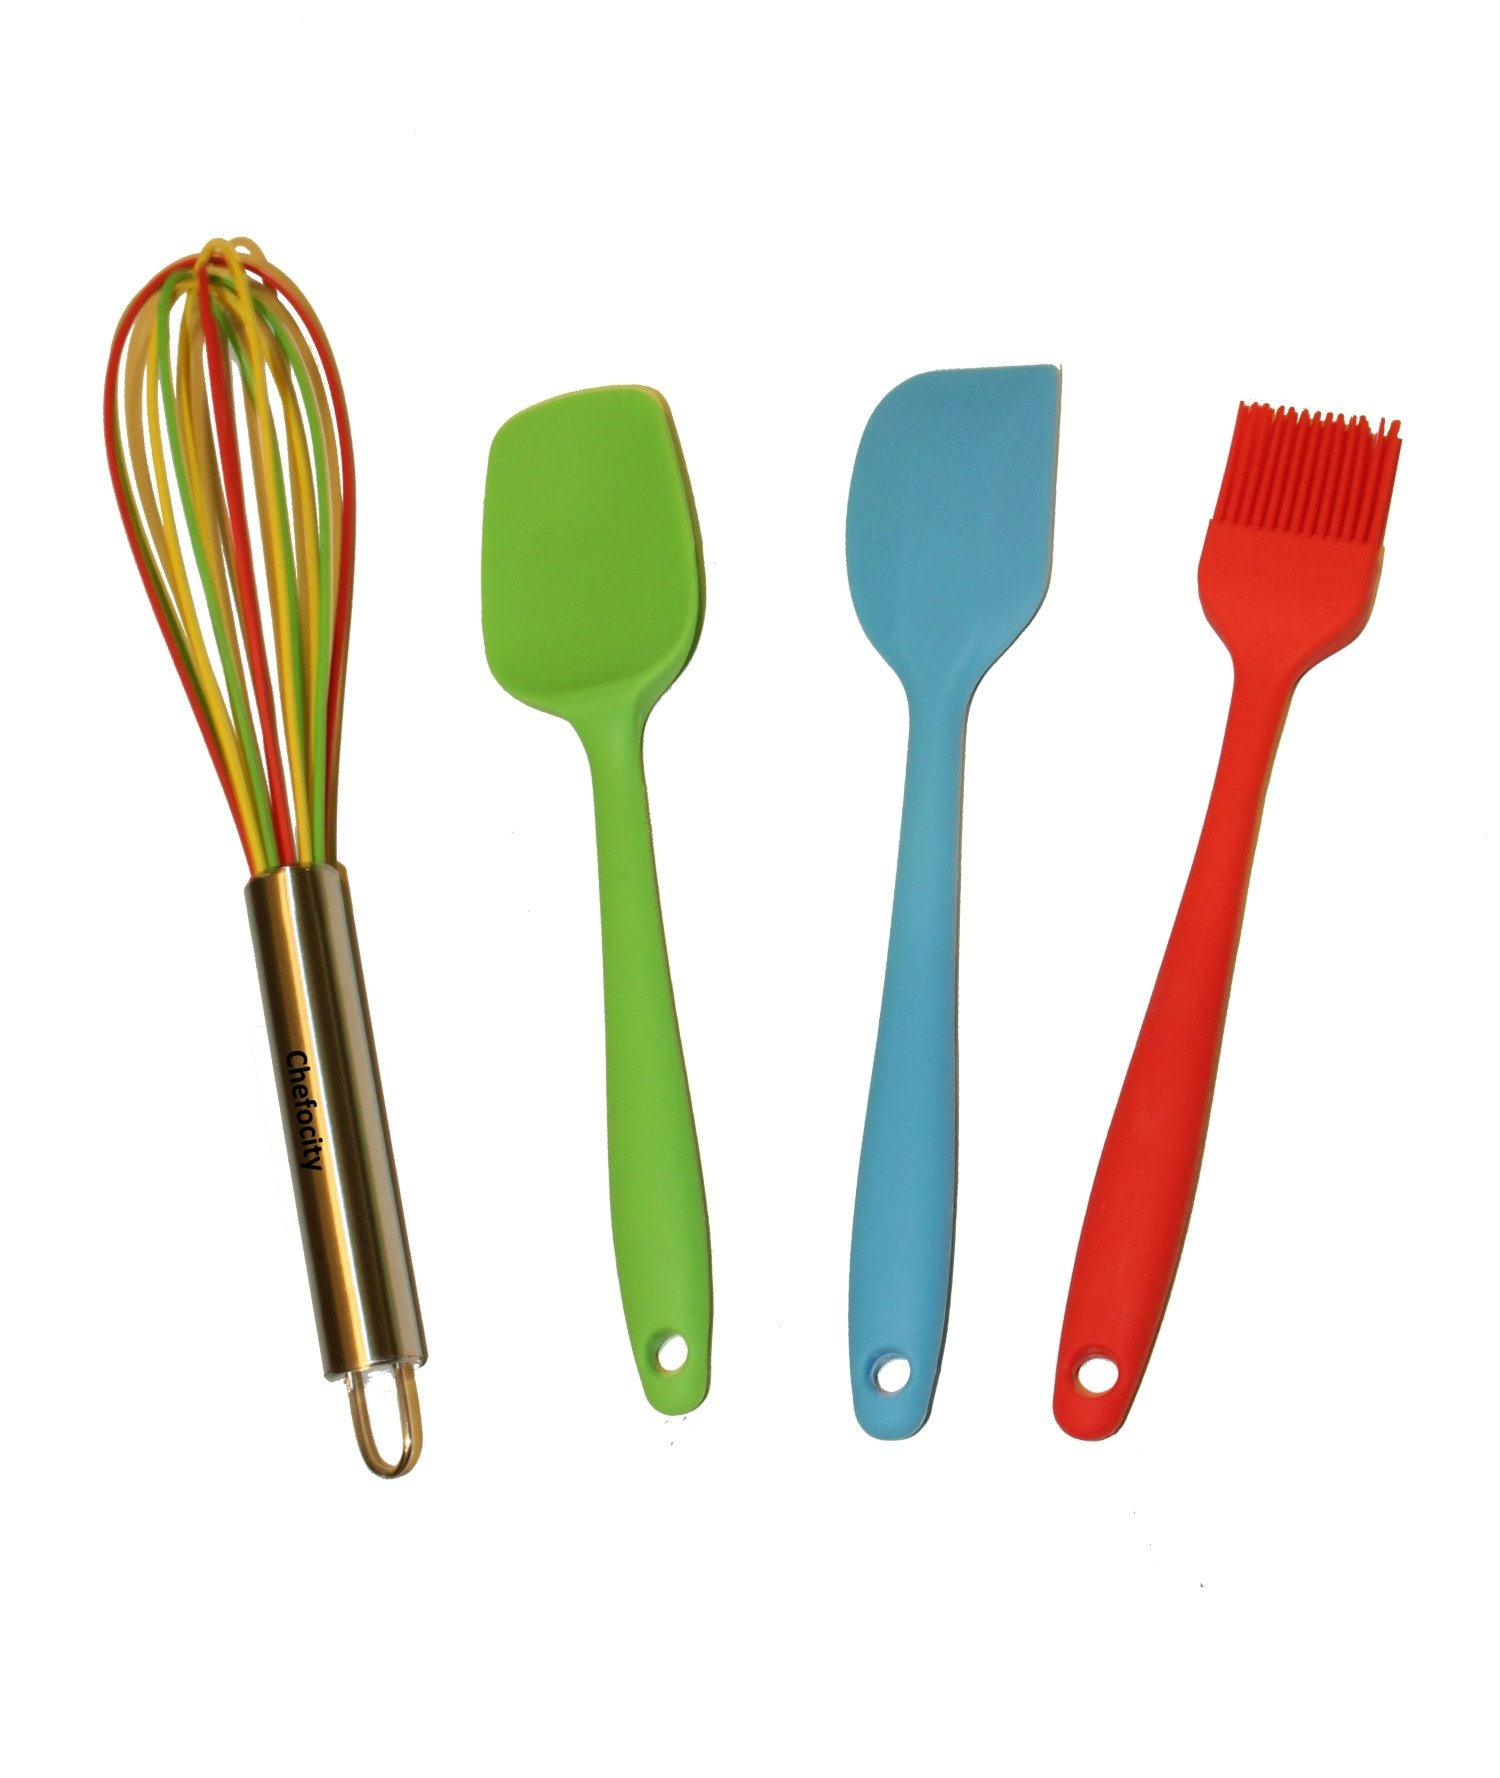 Kids Baking Set - 4 Piece Kids Cooking Utensils - Small Kids Kitchen Accessories - Silicone Whisk, Basting Brush, Scraper, Spatula. Durable and Heat Resistant for Real Cooking. Chefocity